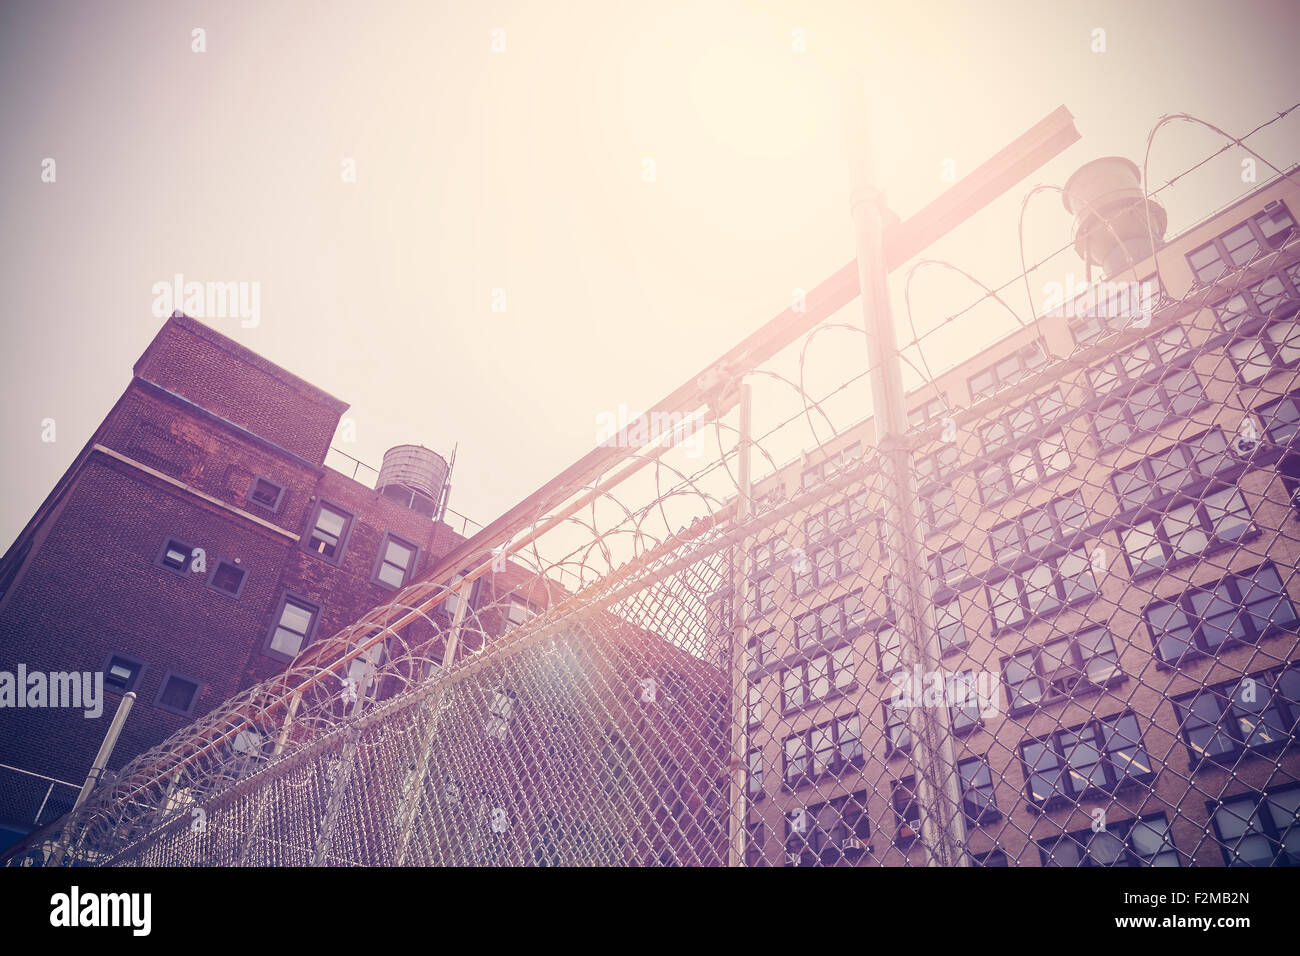 Retro toned old building protected with barbed wire fence, New York, USA. - Stock Image